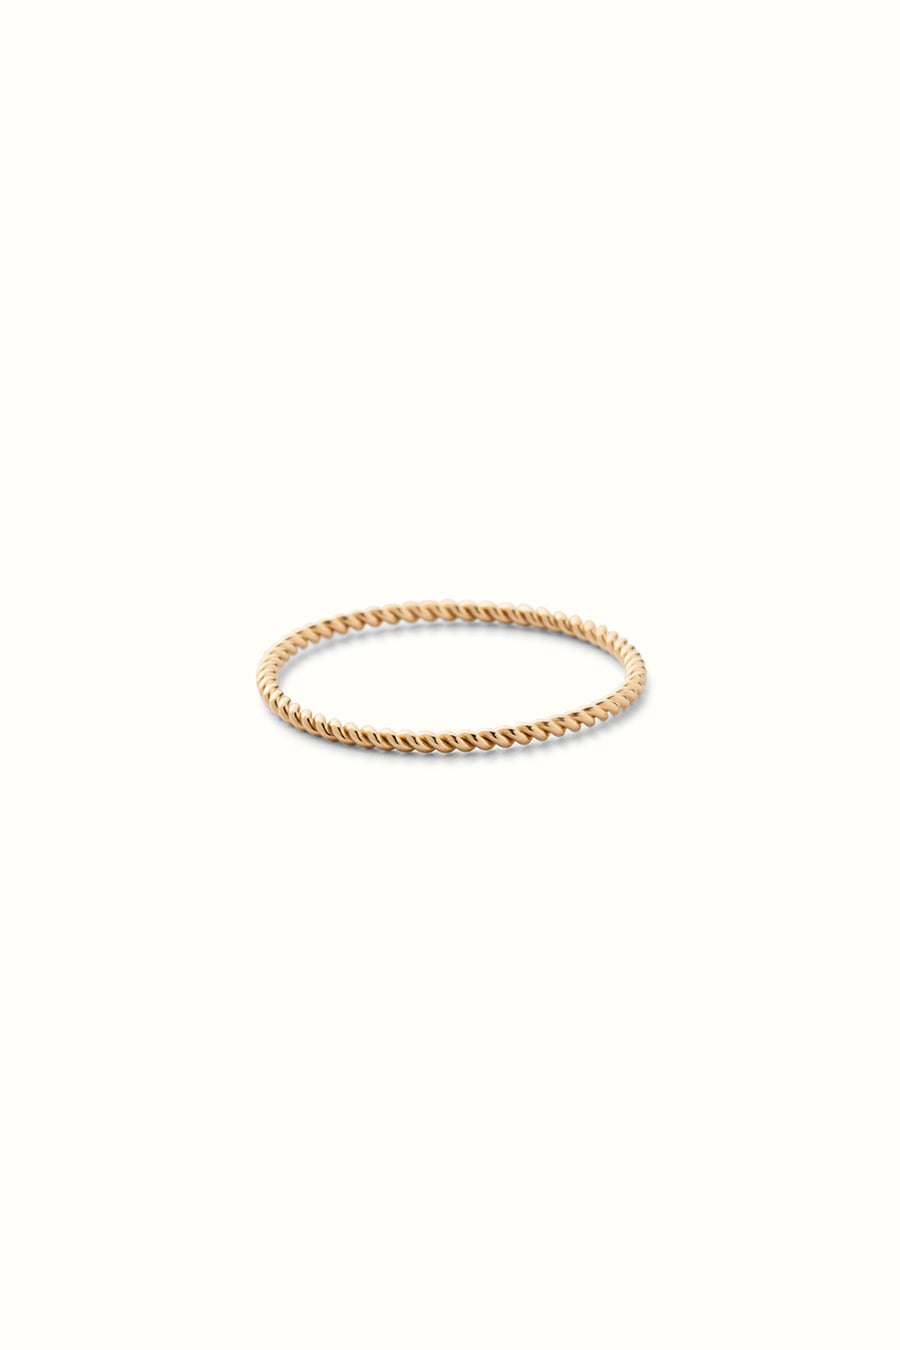 a gold filled slim twisted wire finger ring on a white background